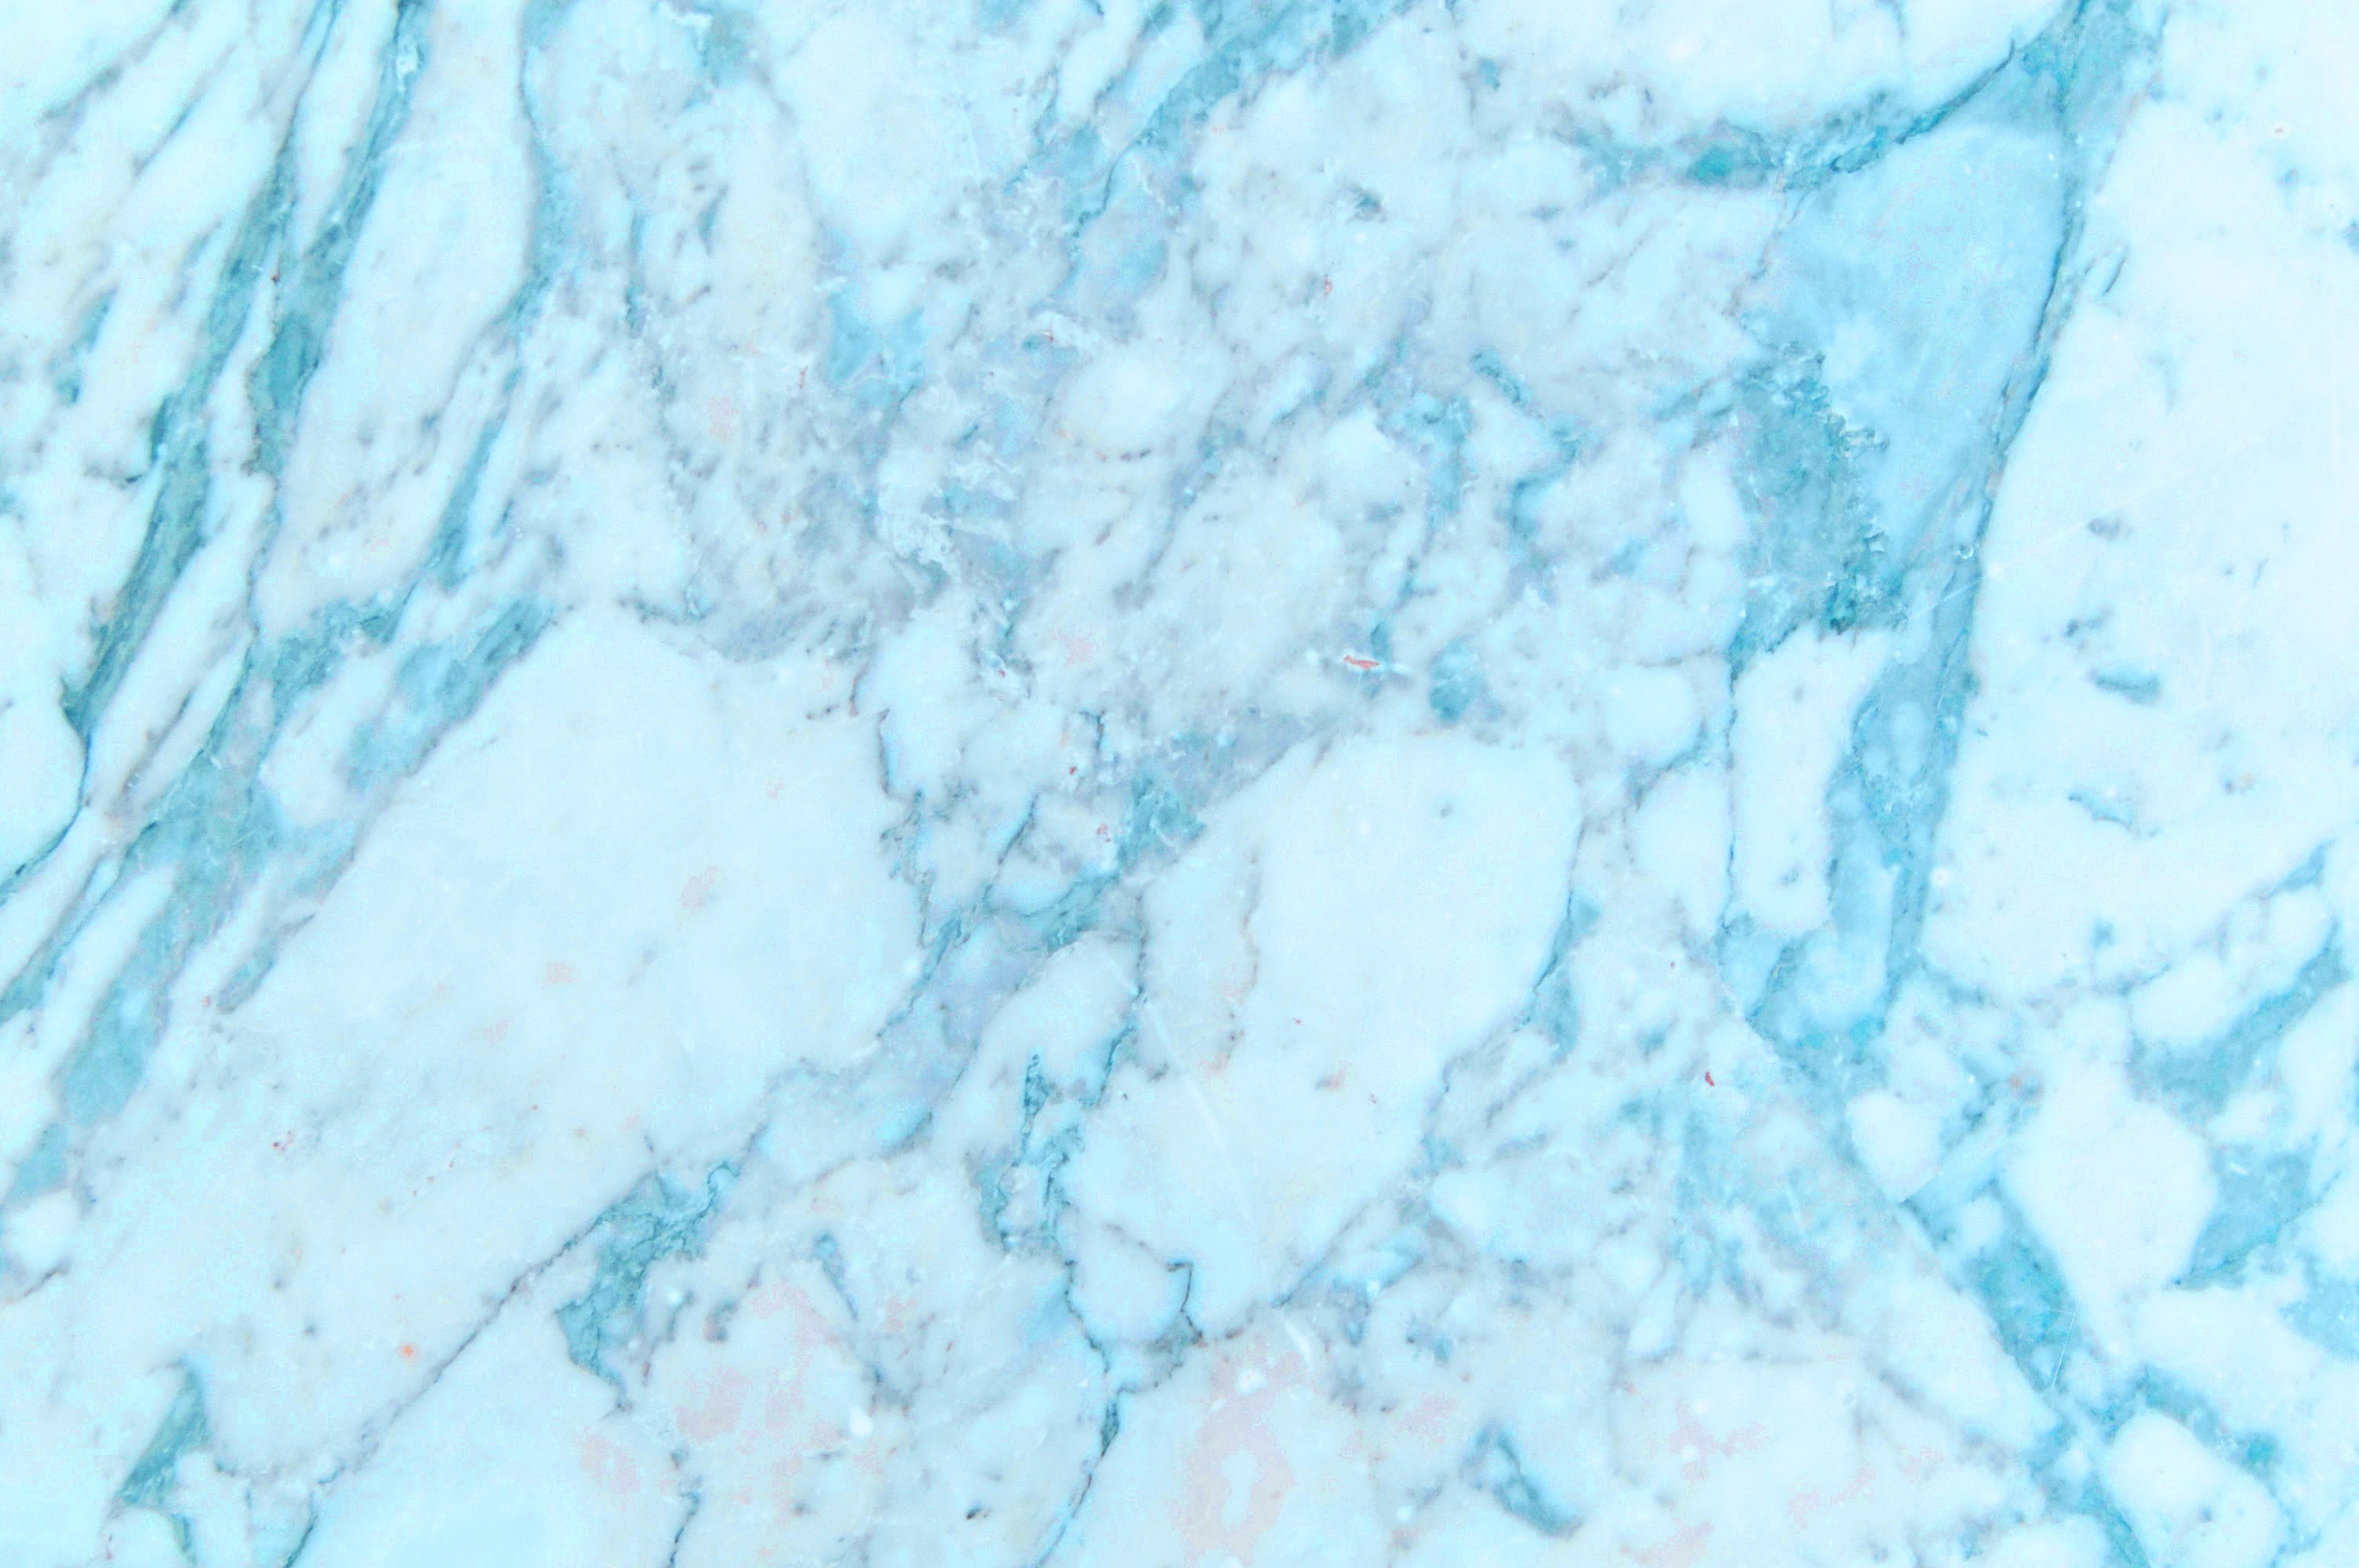 Http Www The Drifter Com Wp Content Uploads 2016 06 Bluemarble Jpg Marble Texture Blue Marble Wallpaper Marble Background